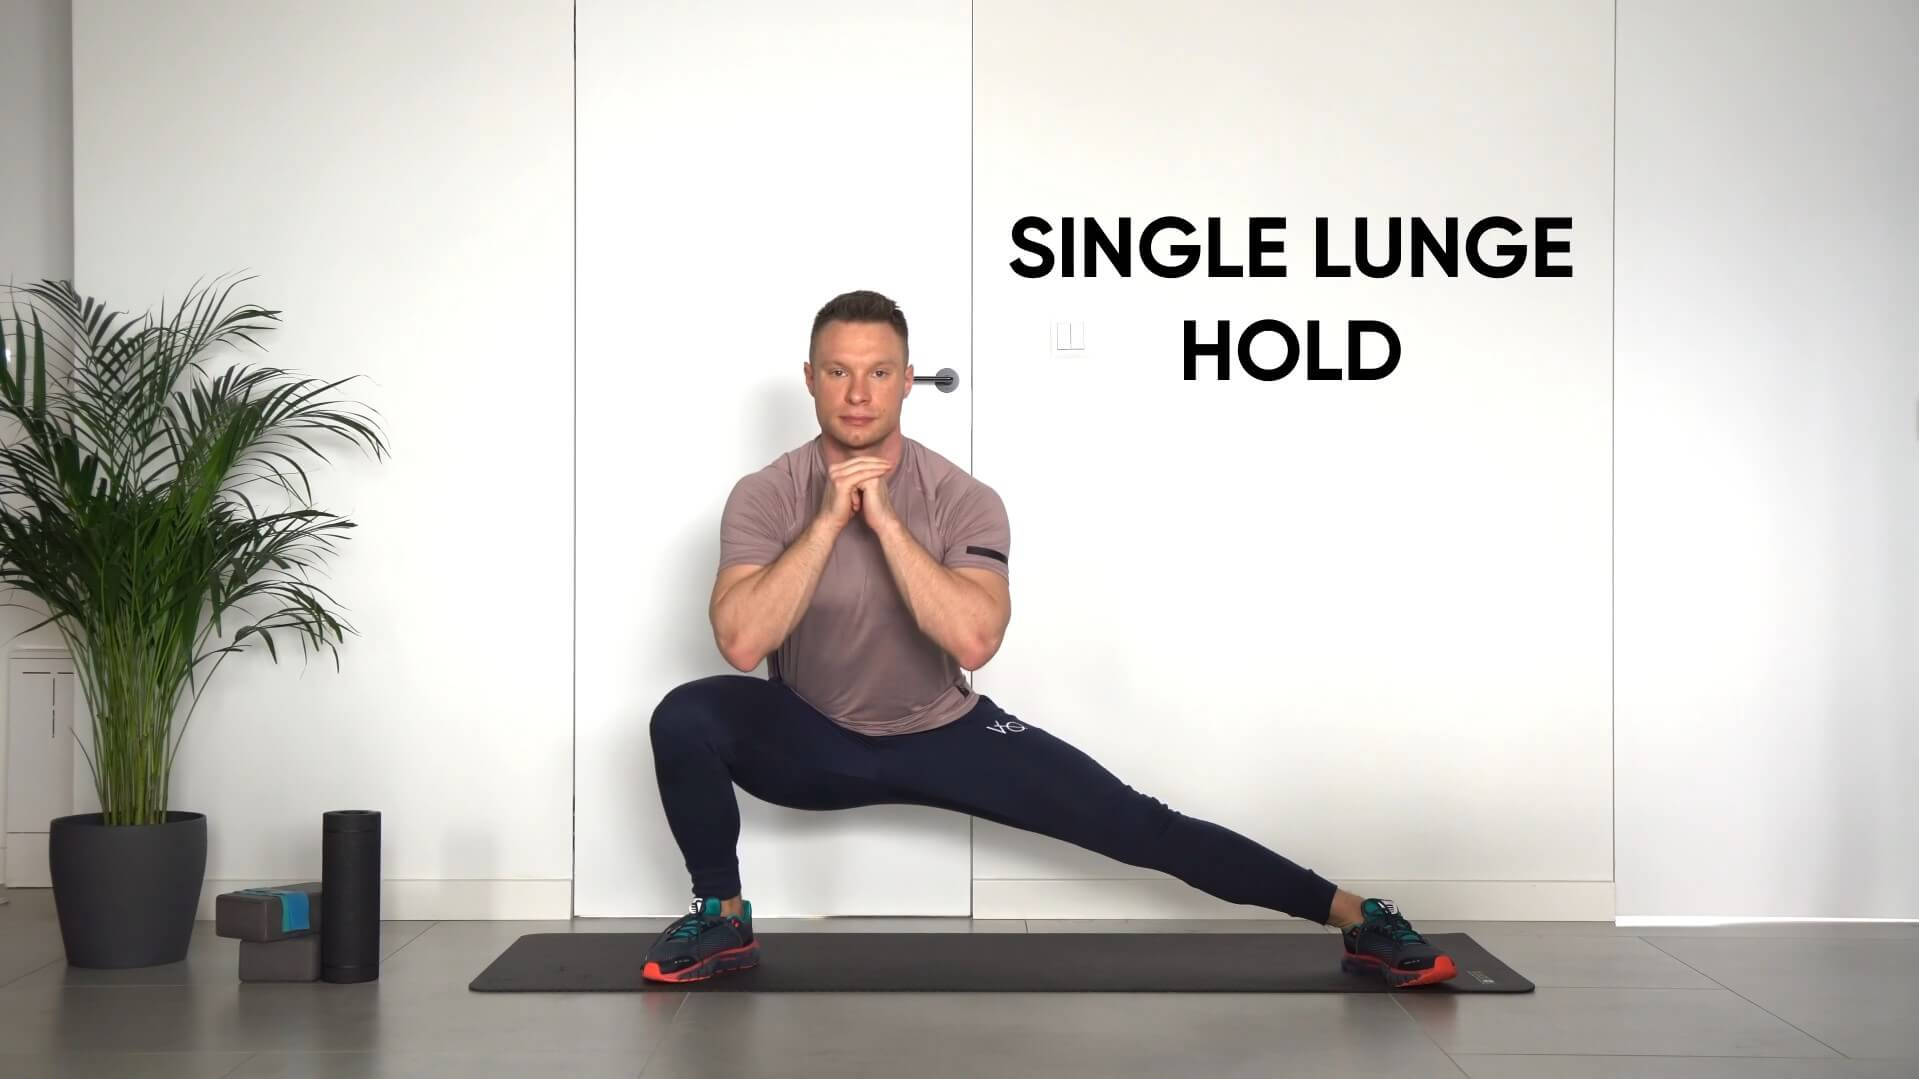 Single lunge hold